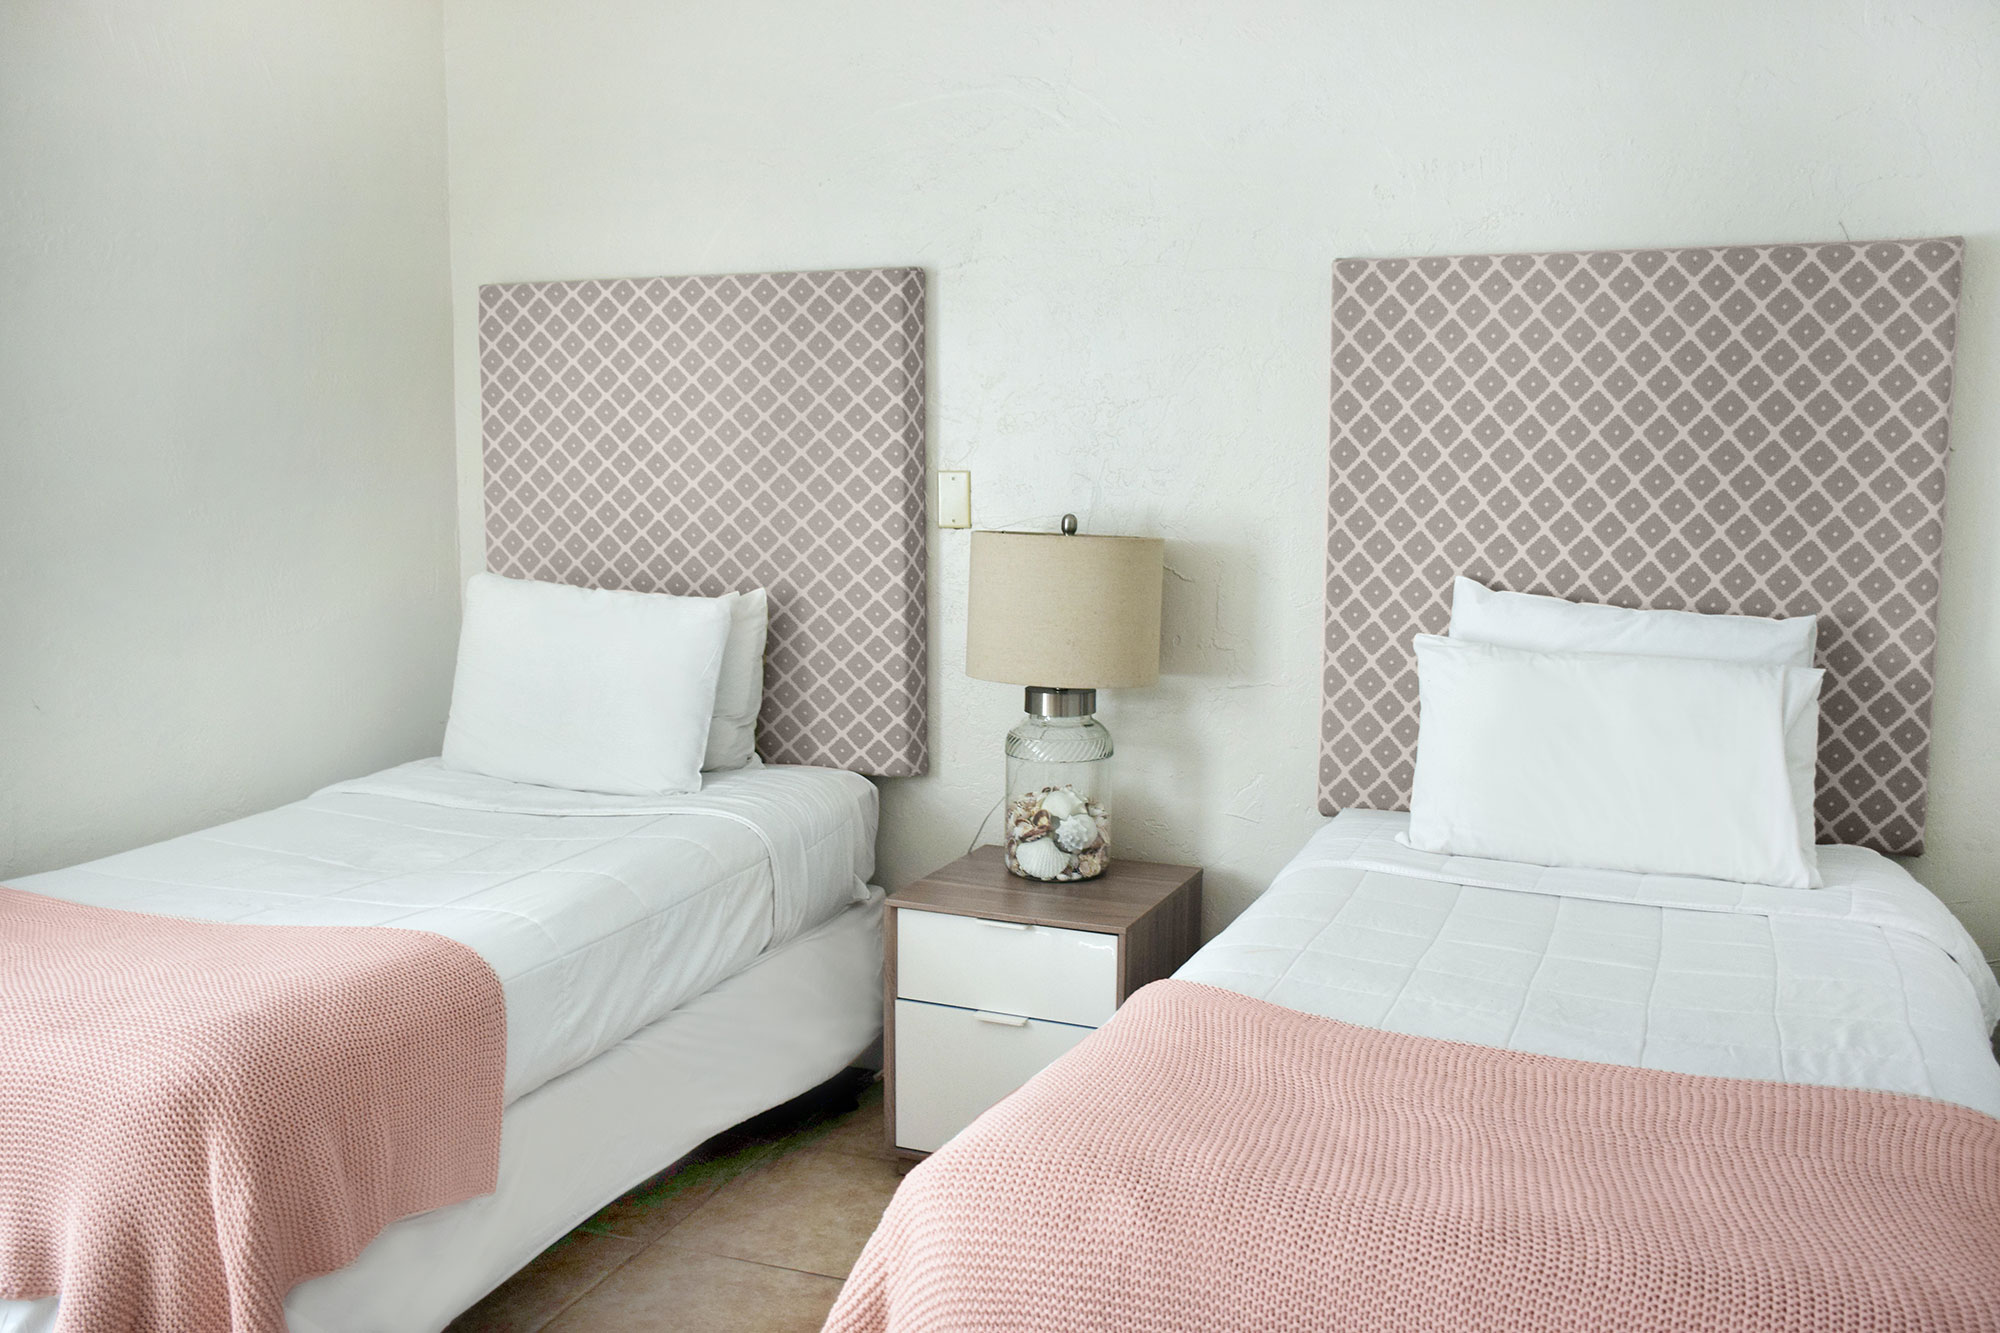 2 twins bedroom at Coral Reef Apartments